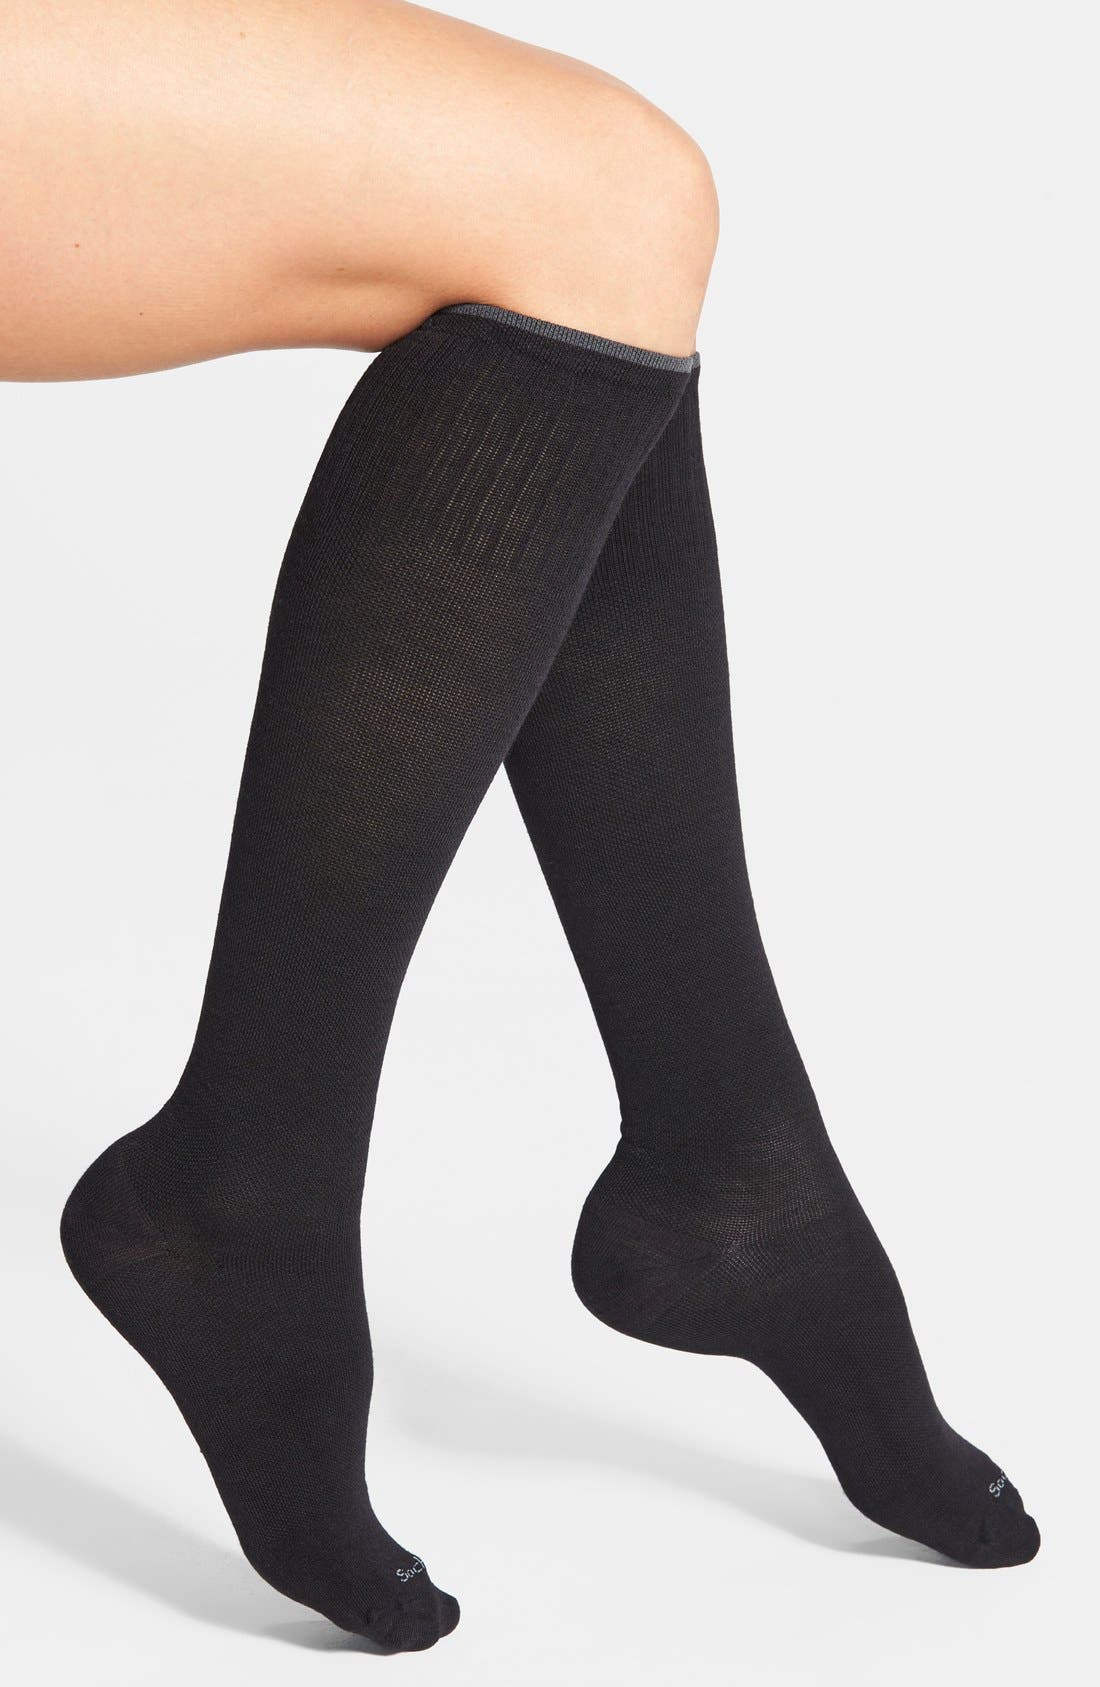 'Goodhew - On the Spot' Compression Knee Socks,                         Main,                         color, Black Solid